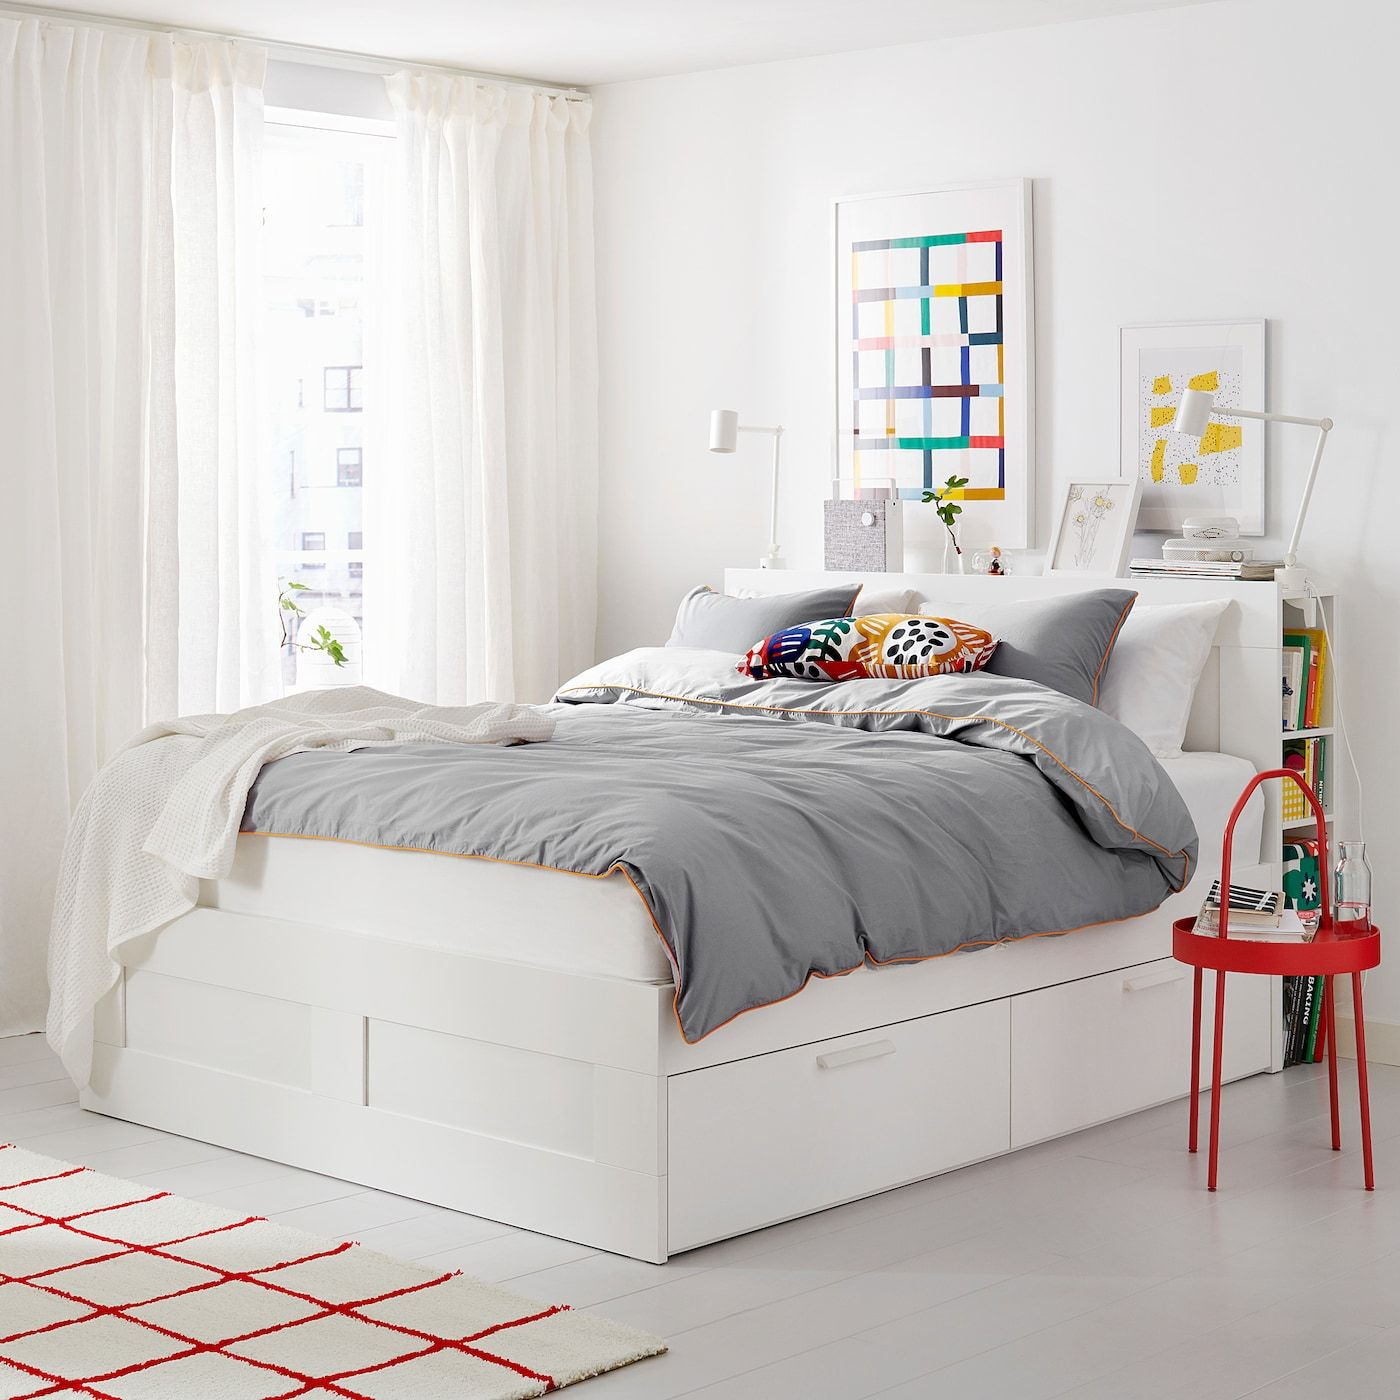 Brimnes Bed Frame With Storage Headboard White Luroy Queen